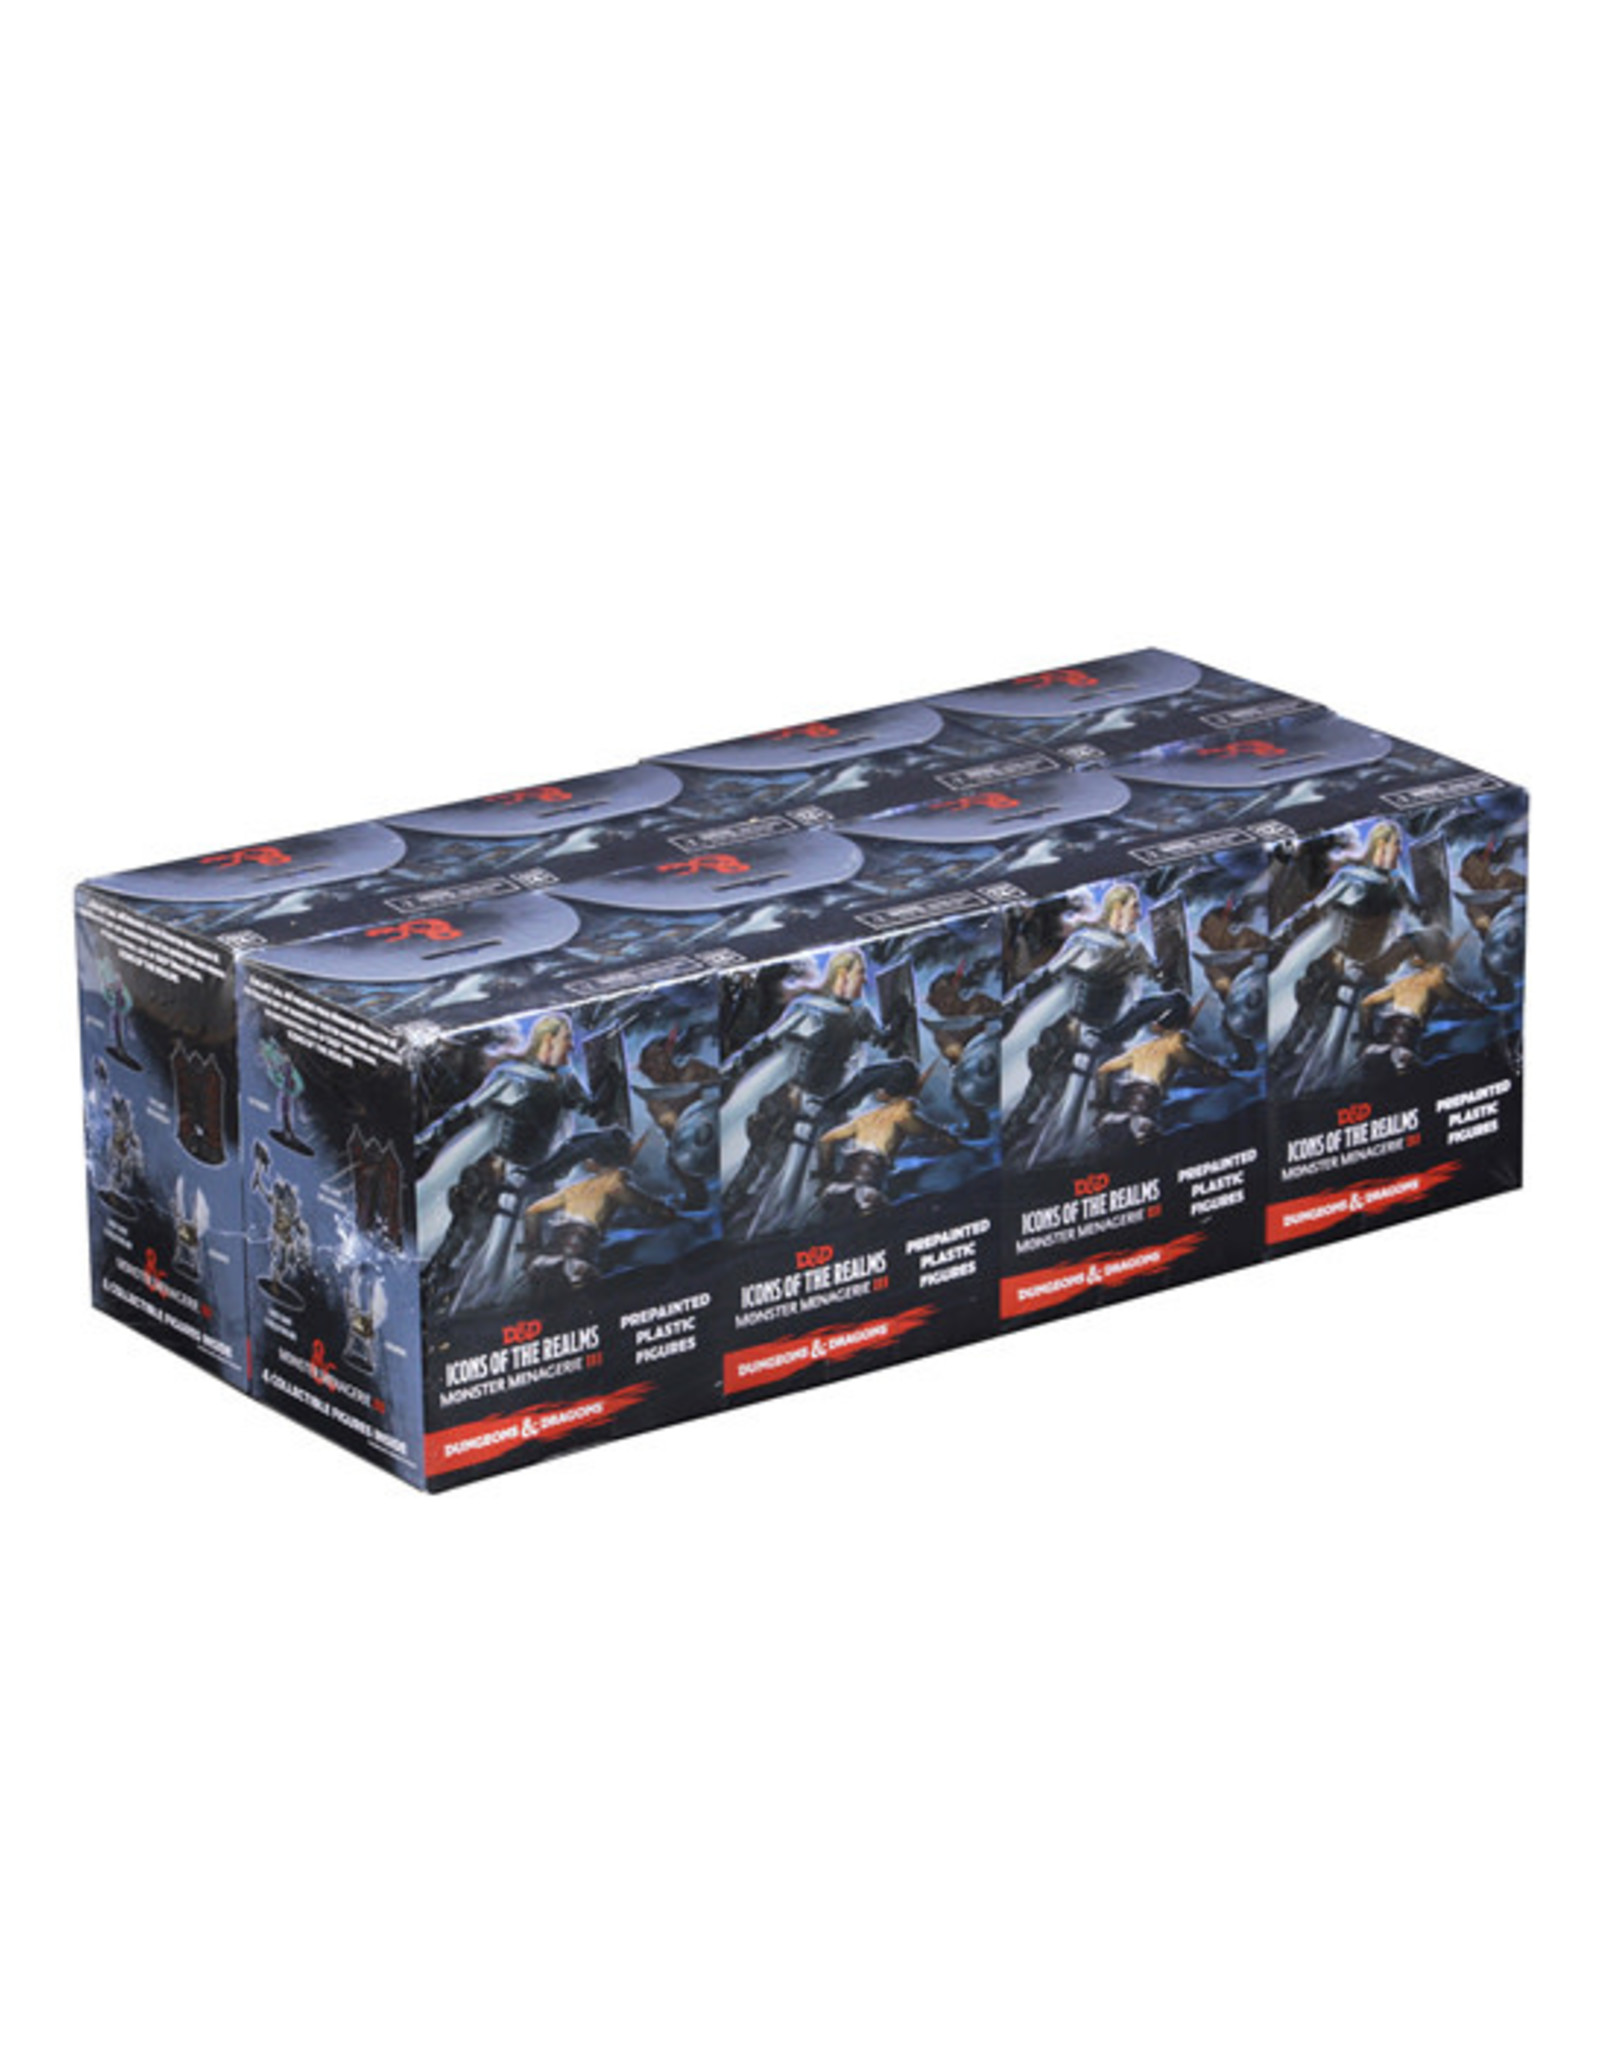 Dungeons & Dragons: Icons of the Realms - Monster Menagerie 3 - Booster Brick